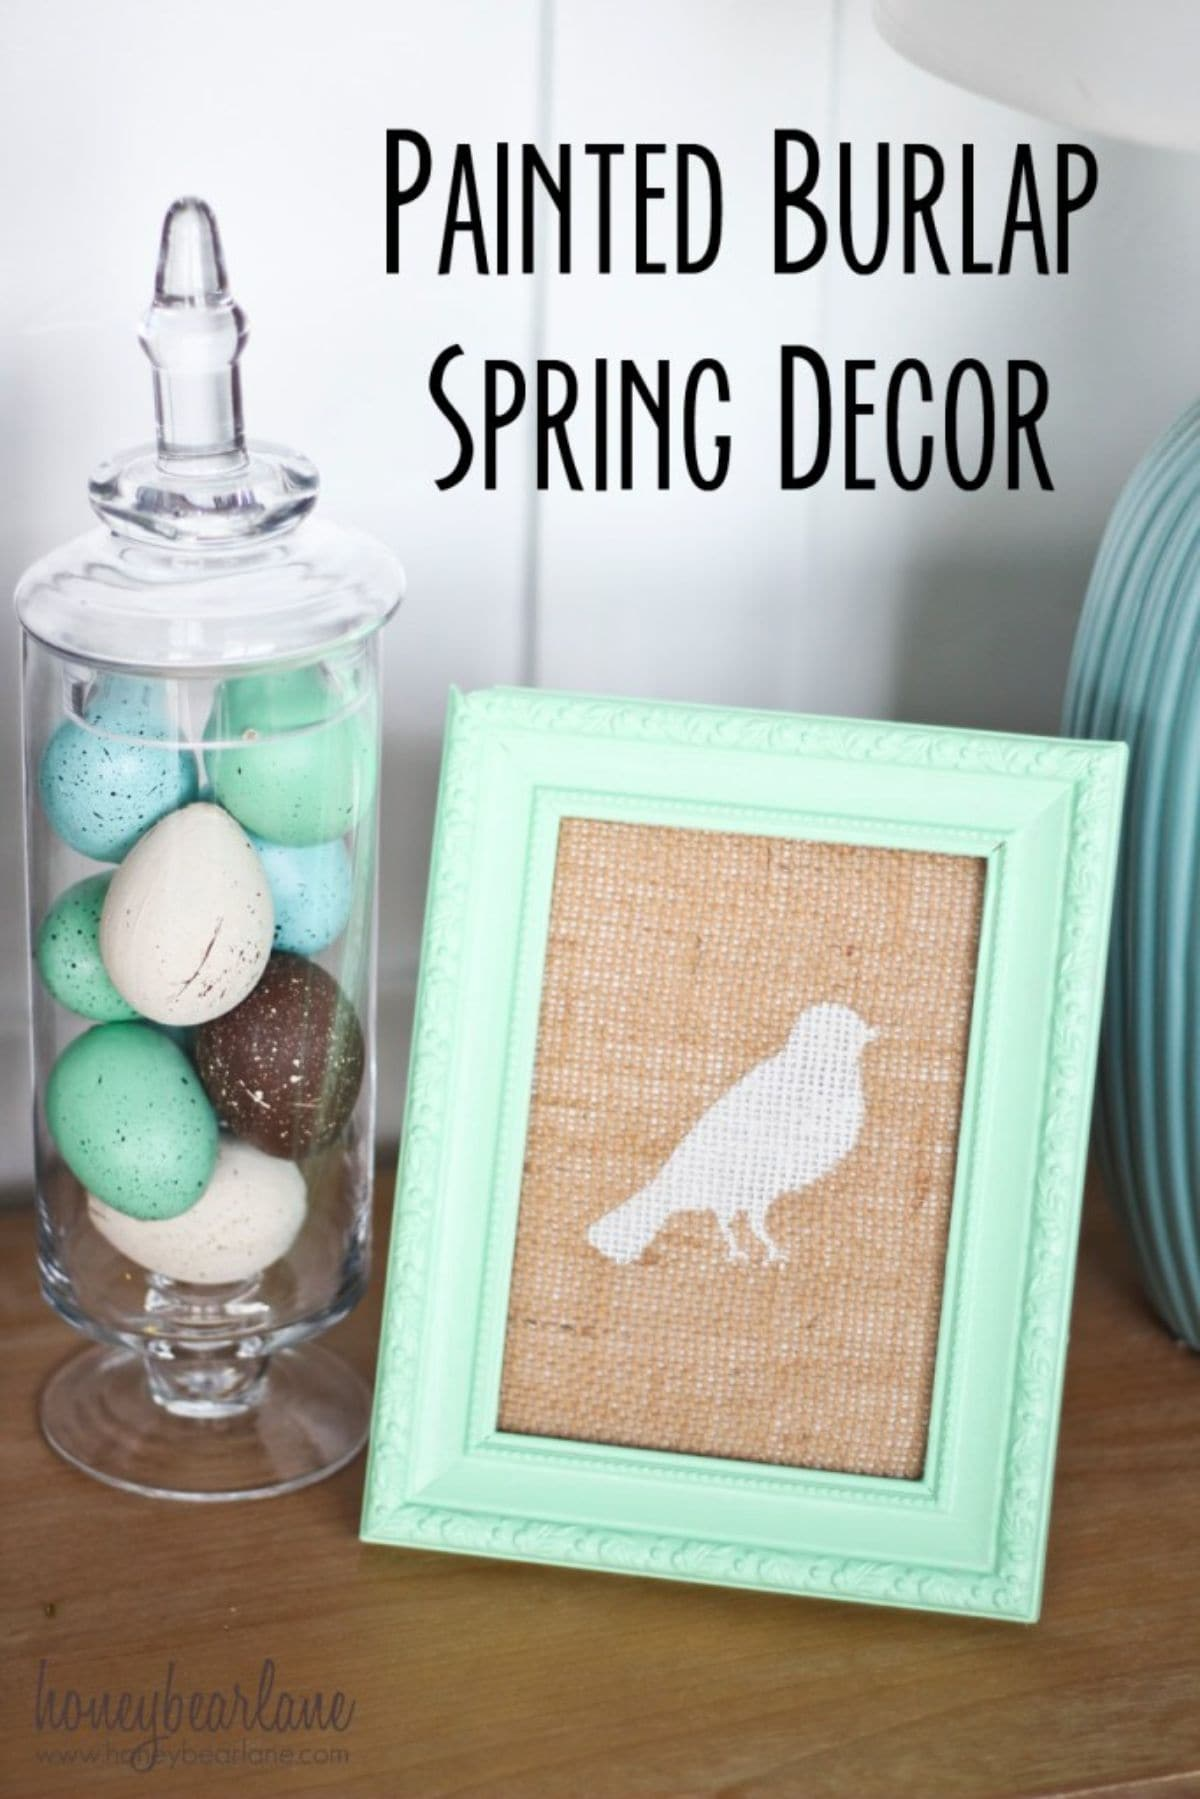 On the left of the picture is a glass jar full of colored eggs. On the right is a burlap sheet with a green painting of a bird on it, it is framed in green